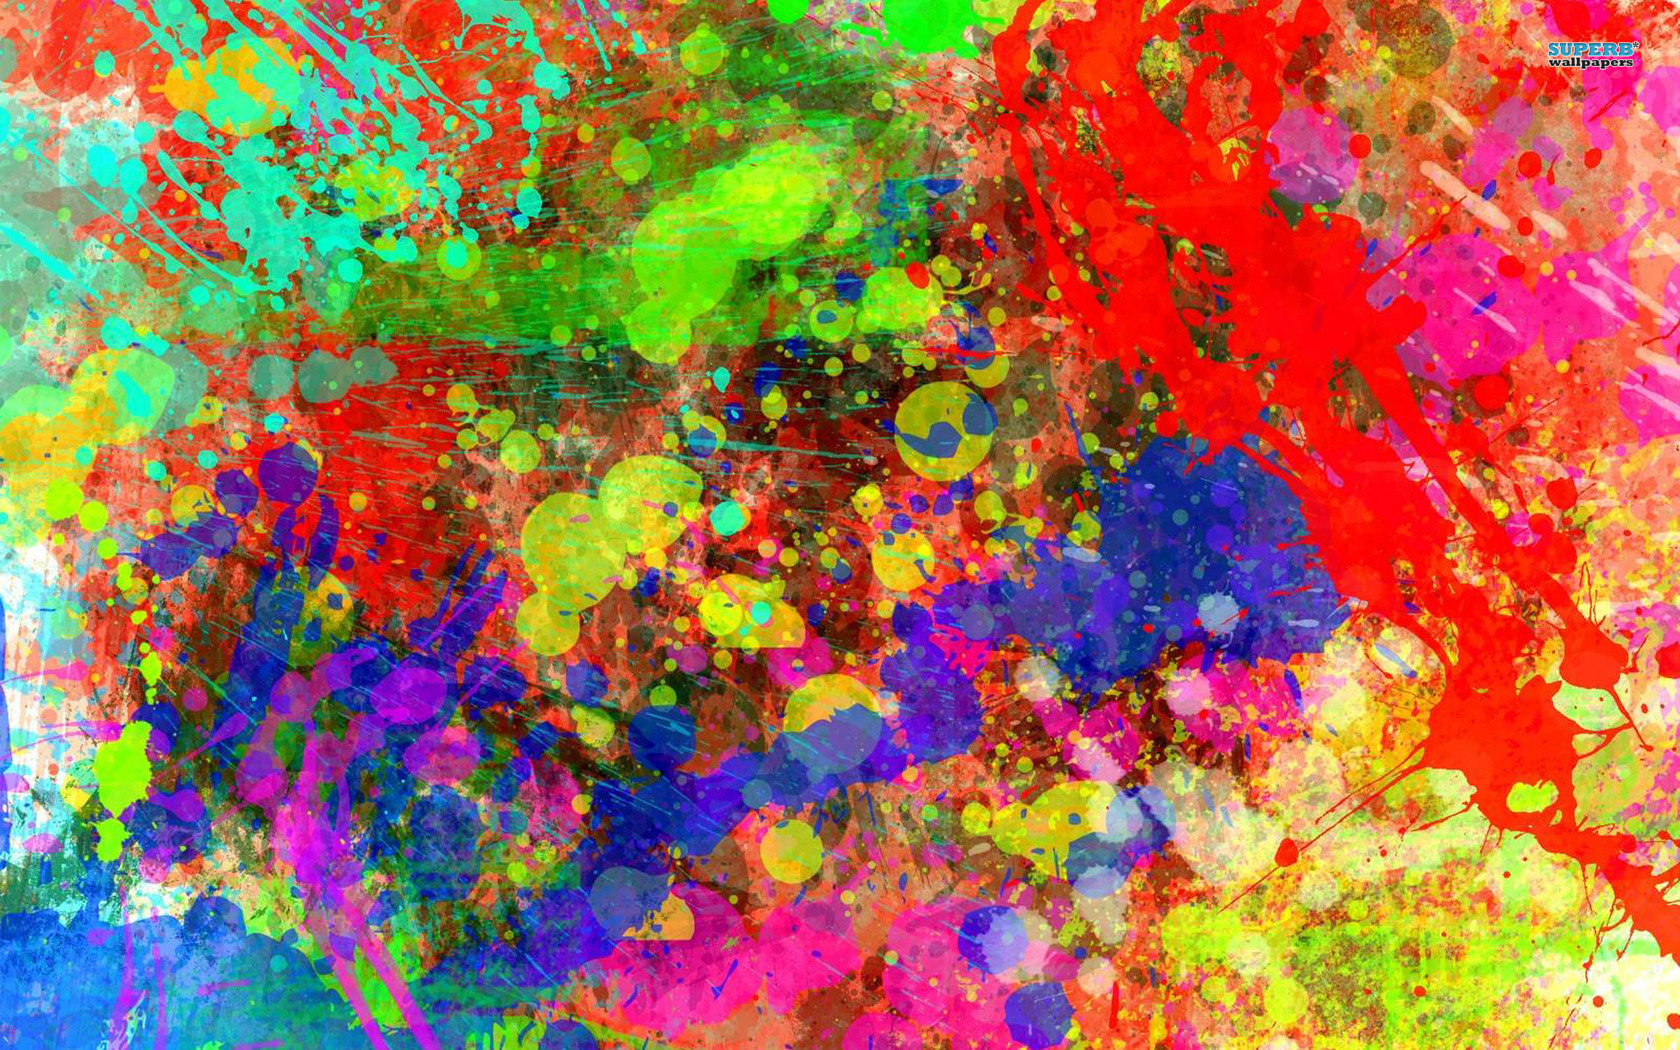 paint splatter photography | Paint splash wallpaper 1680x1050